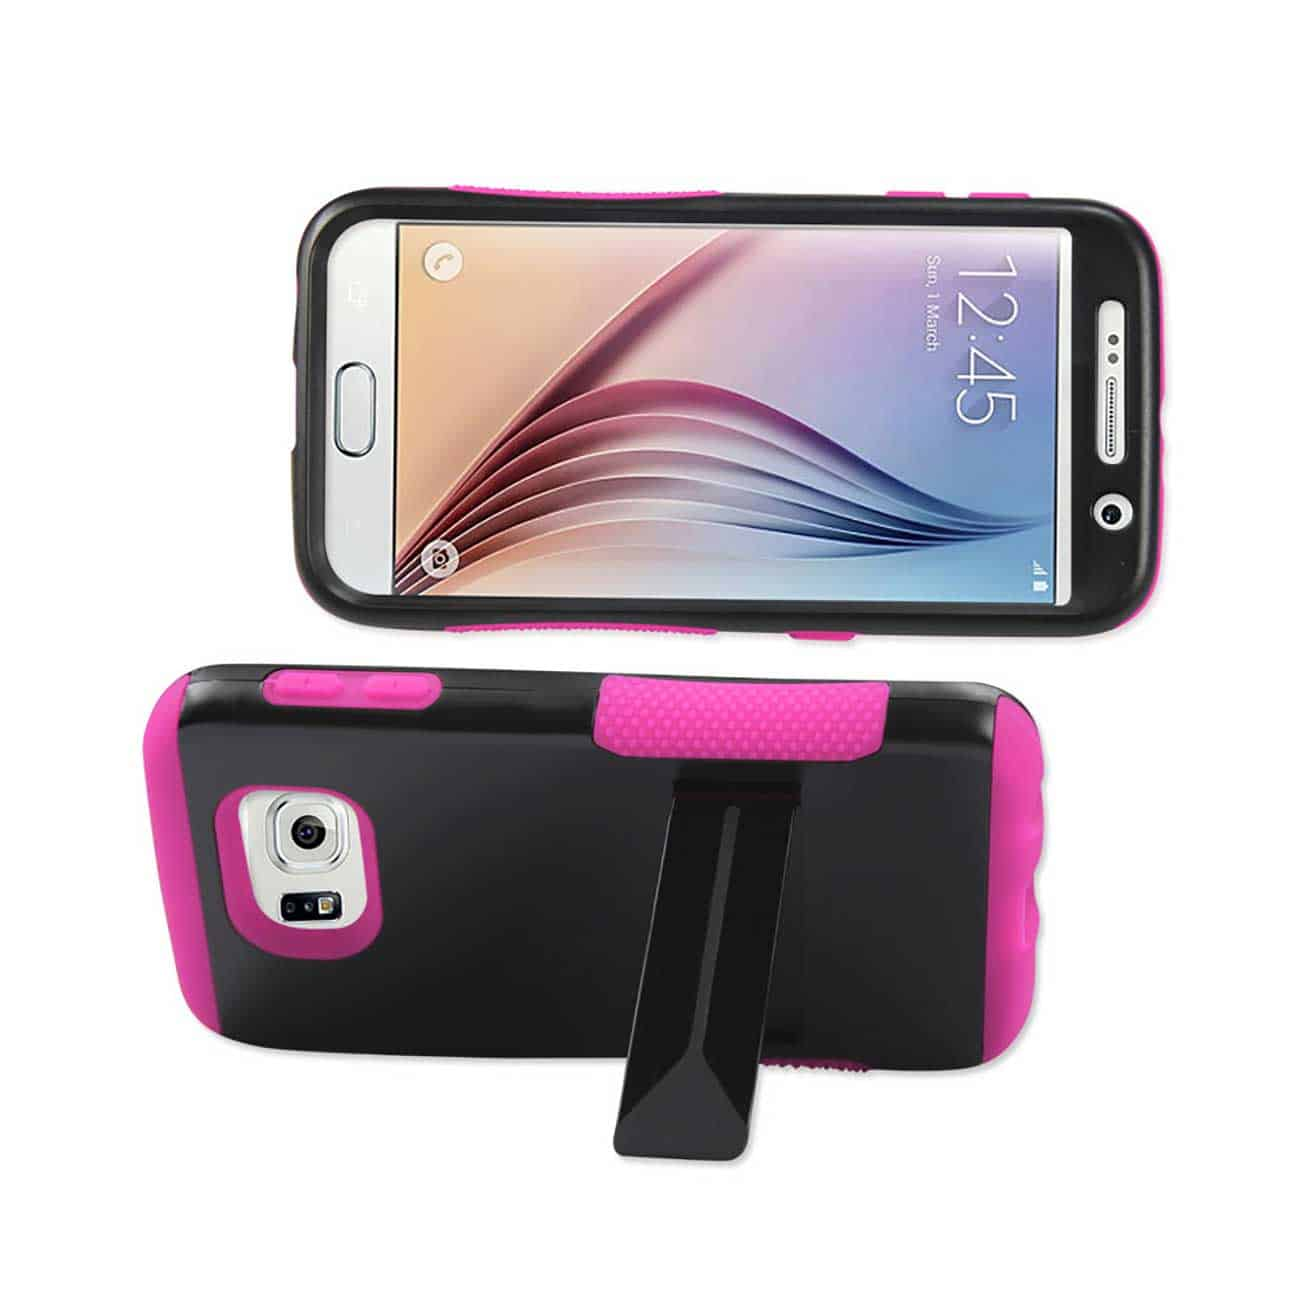 SAMSUNG GALAXY S6 HYBRID HEAVY DUTY GRIP CASE WITH LOWER KICKSTAND IN HOT PINK BLACK